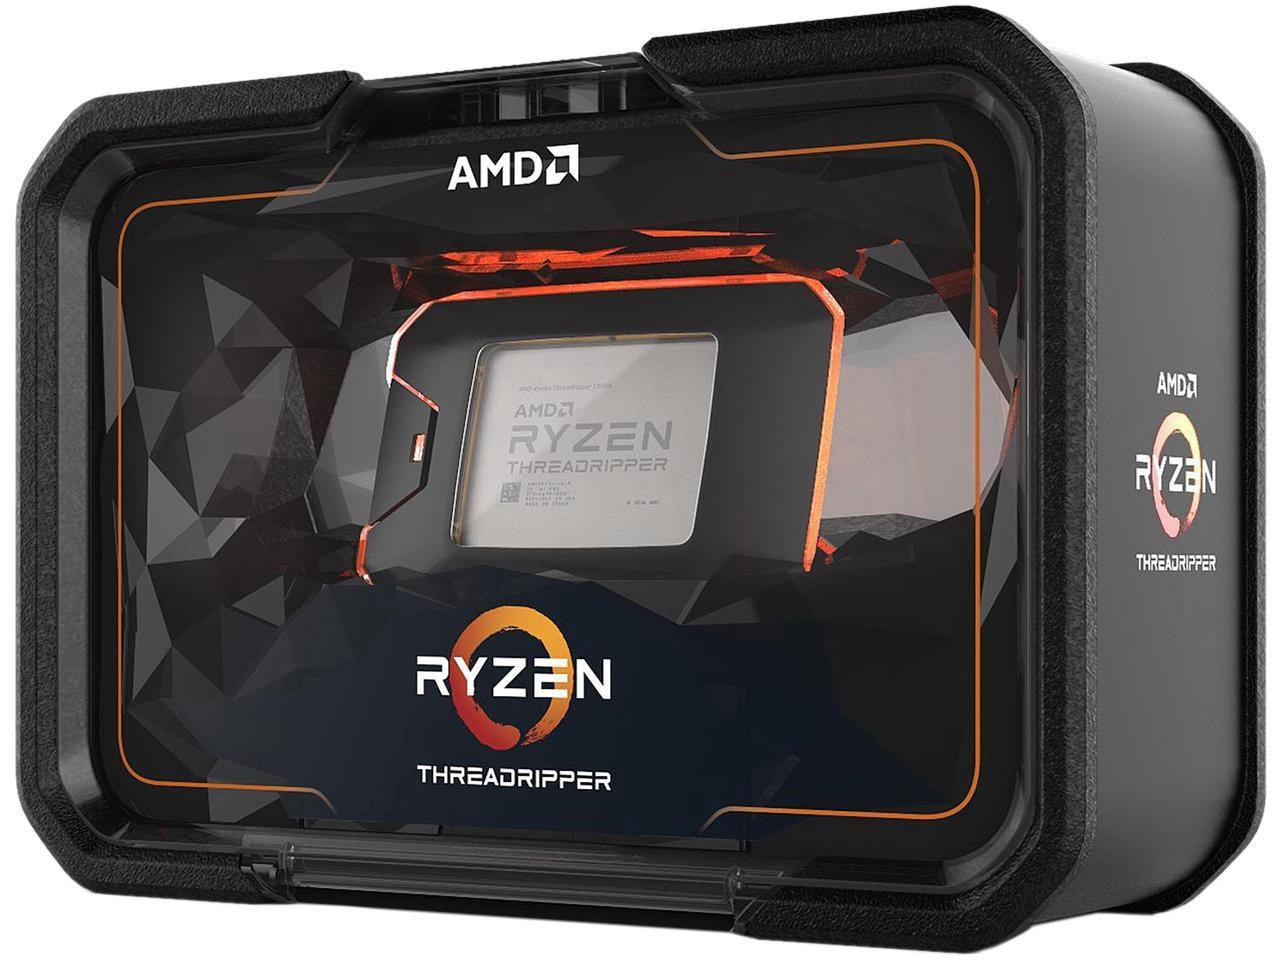 Product image for AMD Ryzen Threadripper 2950X Processor | CX Computer Superstore